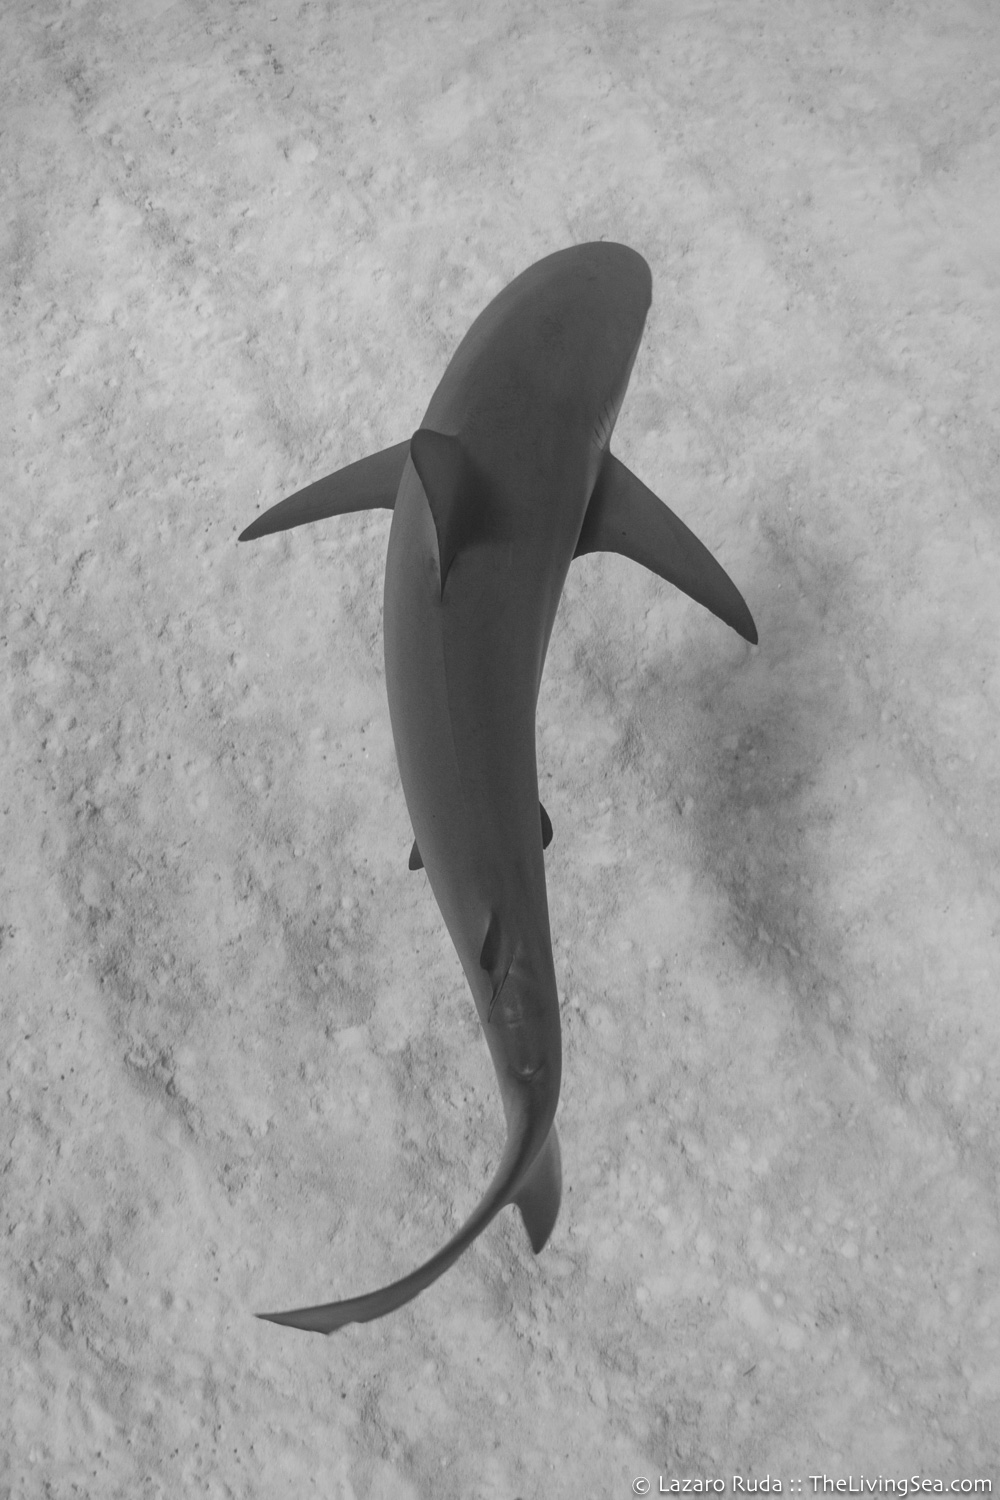 Bahamas, Caribbean reef shark: Carcharhinus perezi, Cartilaginous Fishes: Chondrichthyes, Fishes, Ground Sharks: Carcharhiniformes, Marine Life, Requiem Sharks: Carcharhindidae, Sharks, West Indies, b/w, copyrighted, marine, ocean, sand, tropical, underwater, underwater photo, wide angle